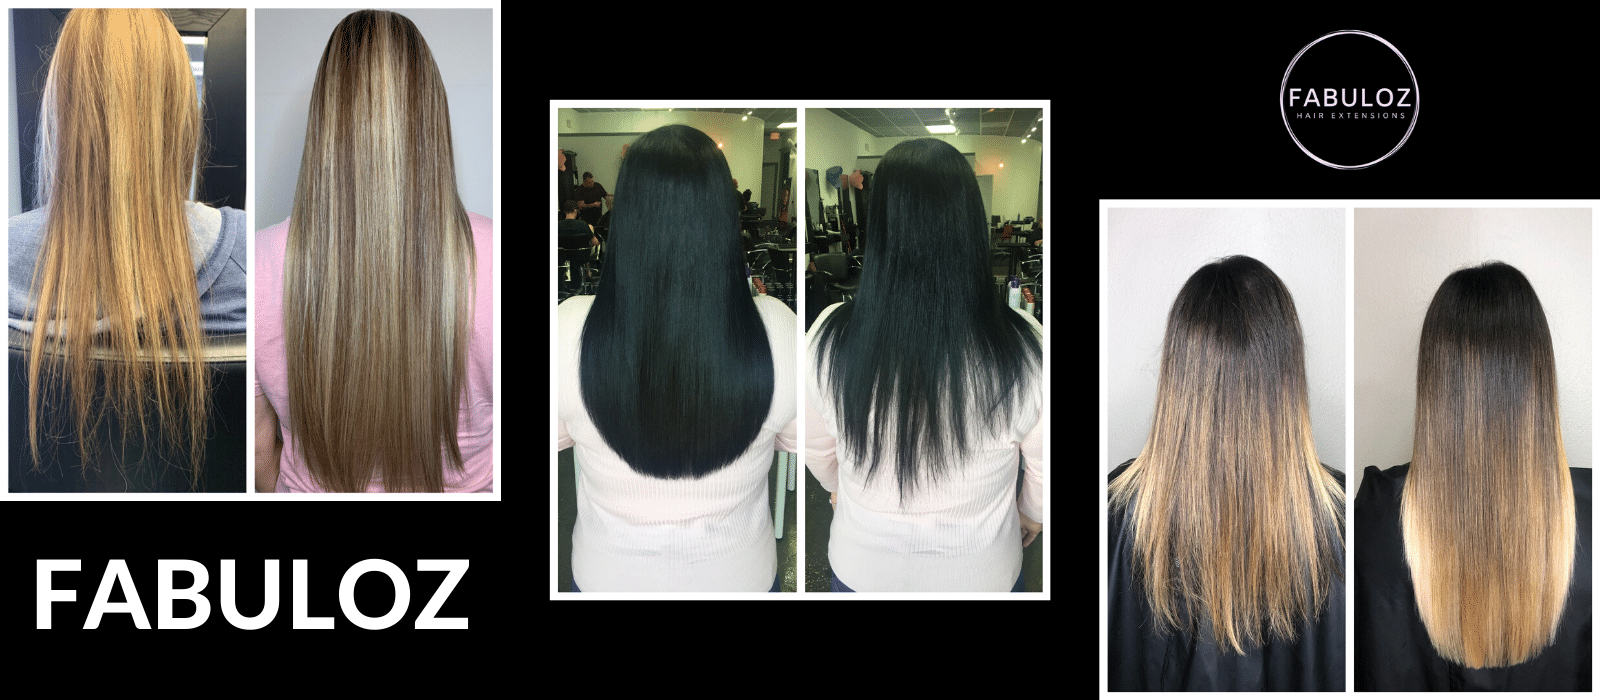 Hair Extensions For Thinning Hair before and after